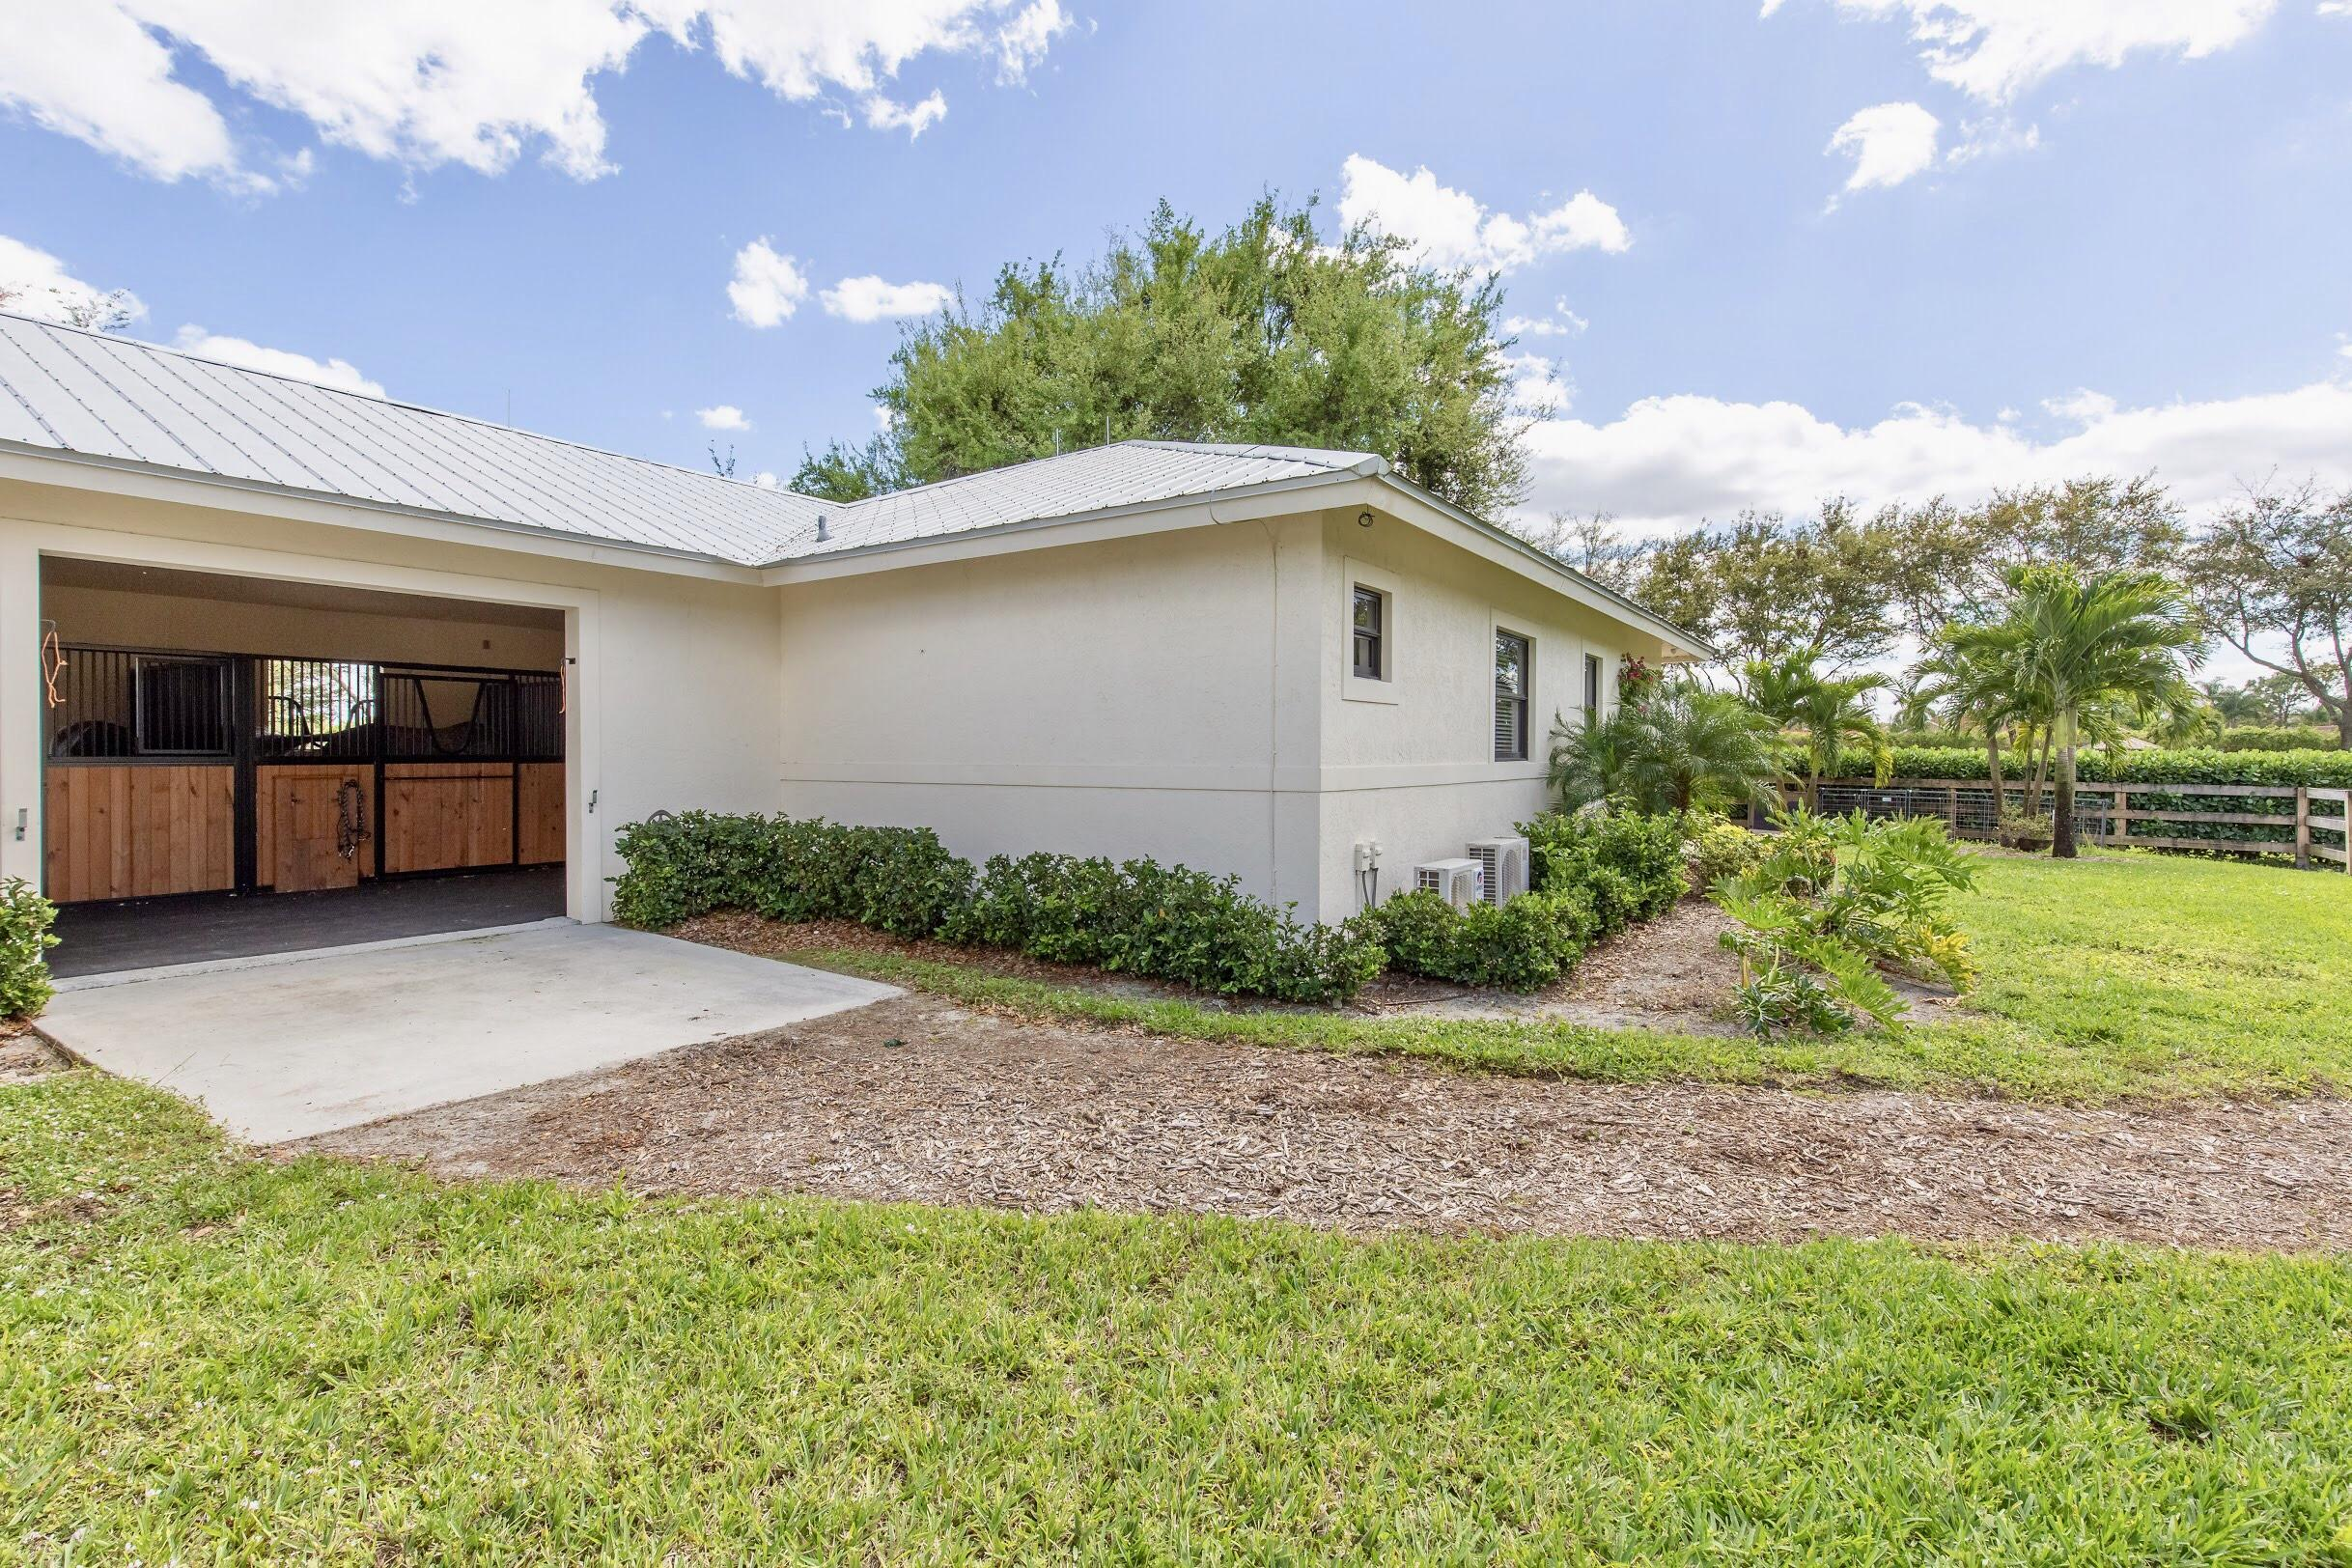 14965 Oatland Court, Wellington, Florida 33414, 5 Bedrooms Bedrooms, ,4.1 BathroomsBathrooms,Single Family,For Rent,Paddock Park 2,Oatland,1,RX-10552192